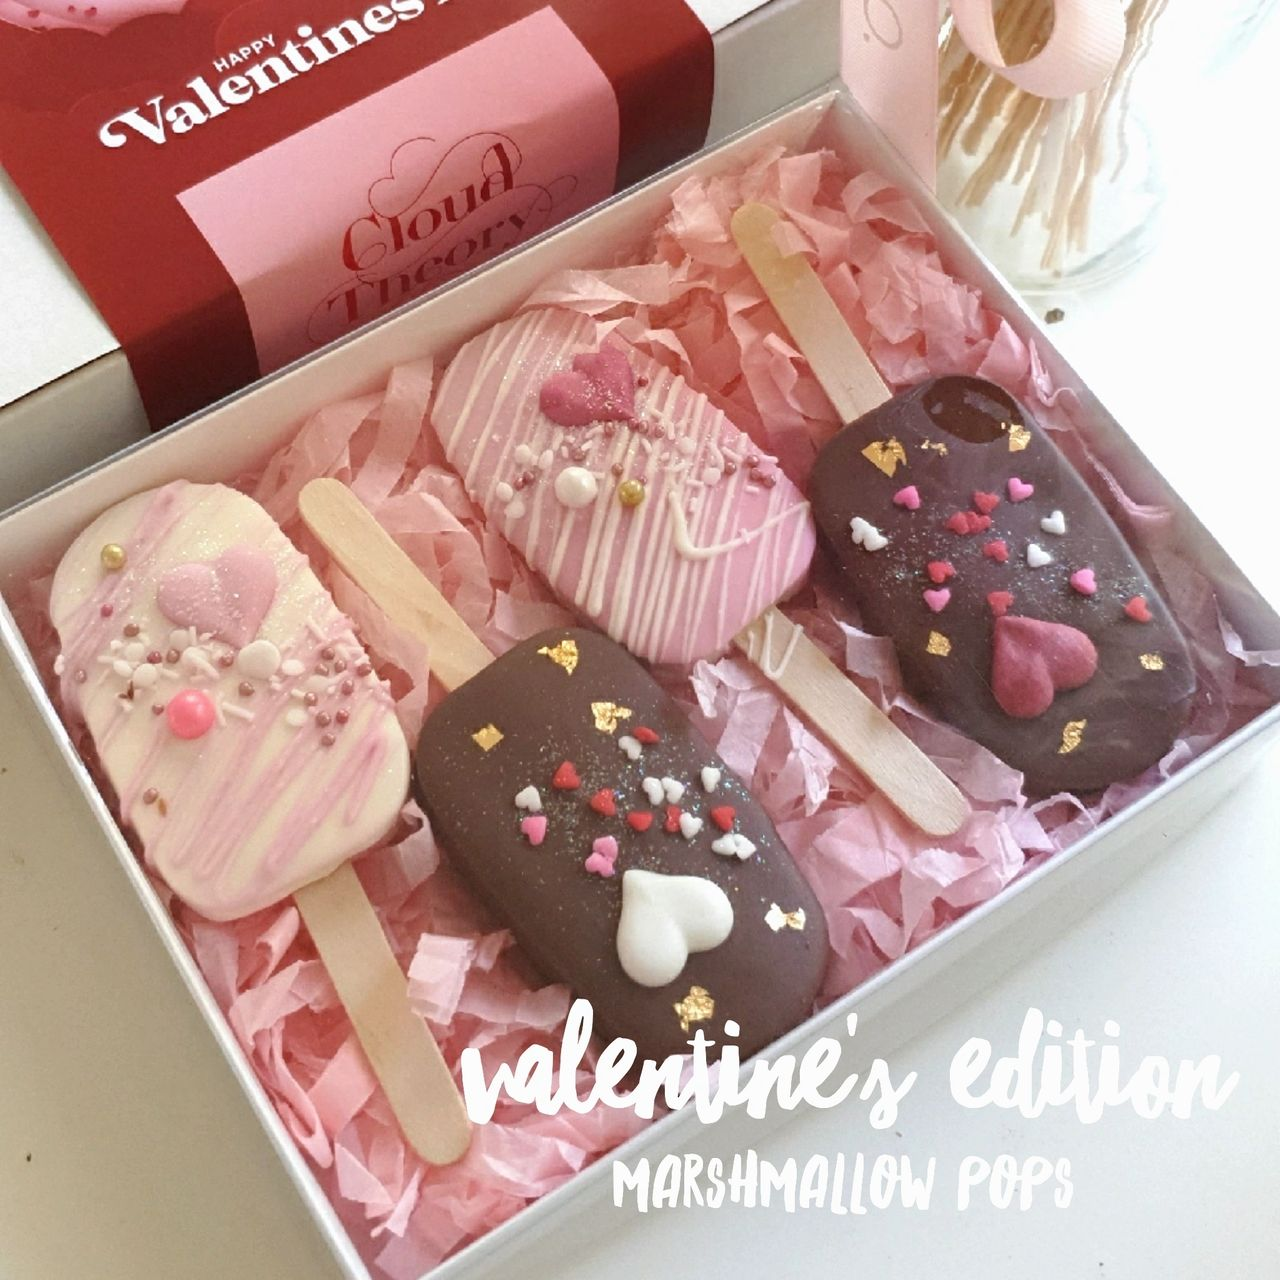 Valentine's Day Edition Marshmallow Popsicles -Take your Valentine to Cloud 9 with these dreamy marshmallow popsicles.  Each marshmallow pop is beautifully decorated and dipped in white chocolate and milk chocolate.